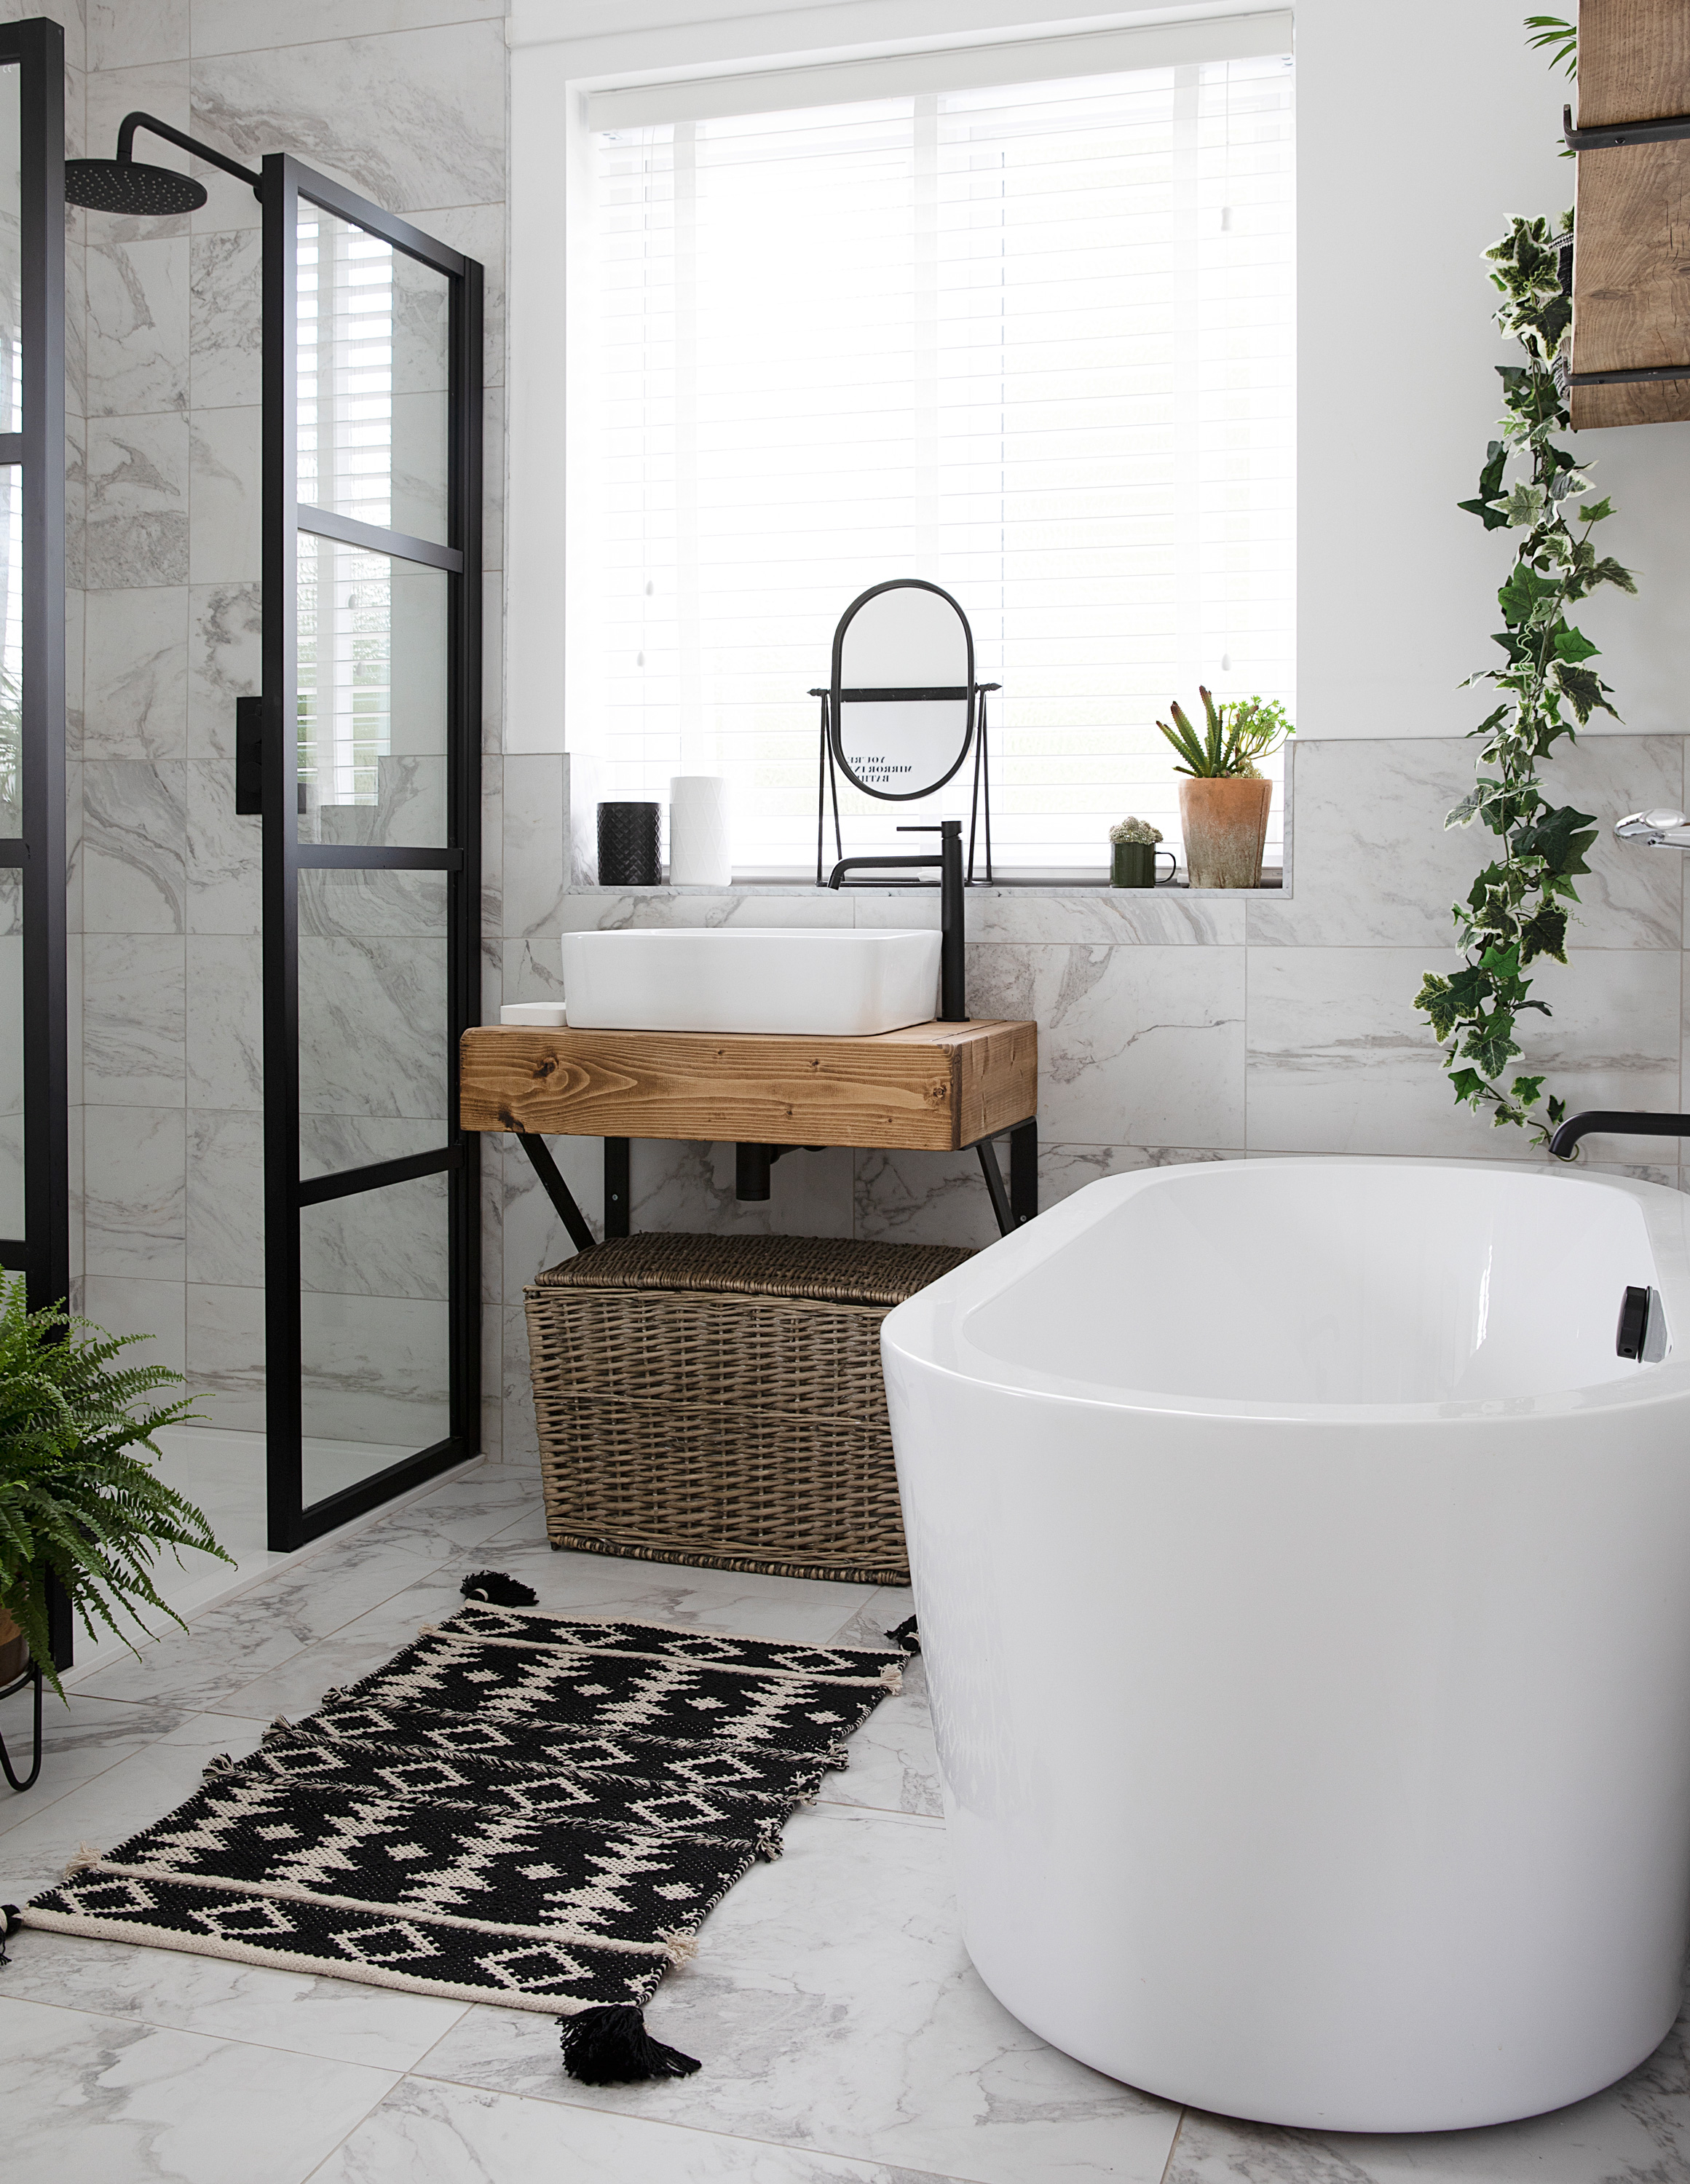 22 Small Bathroom Storage Ideas How To Declutter Even The Tiniest Of Spaces Real Homes